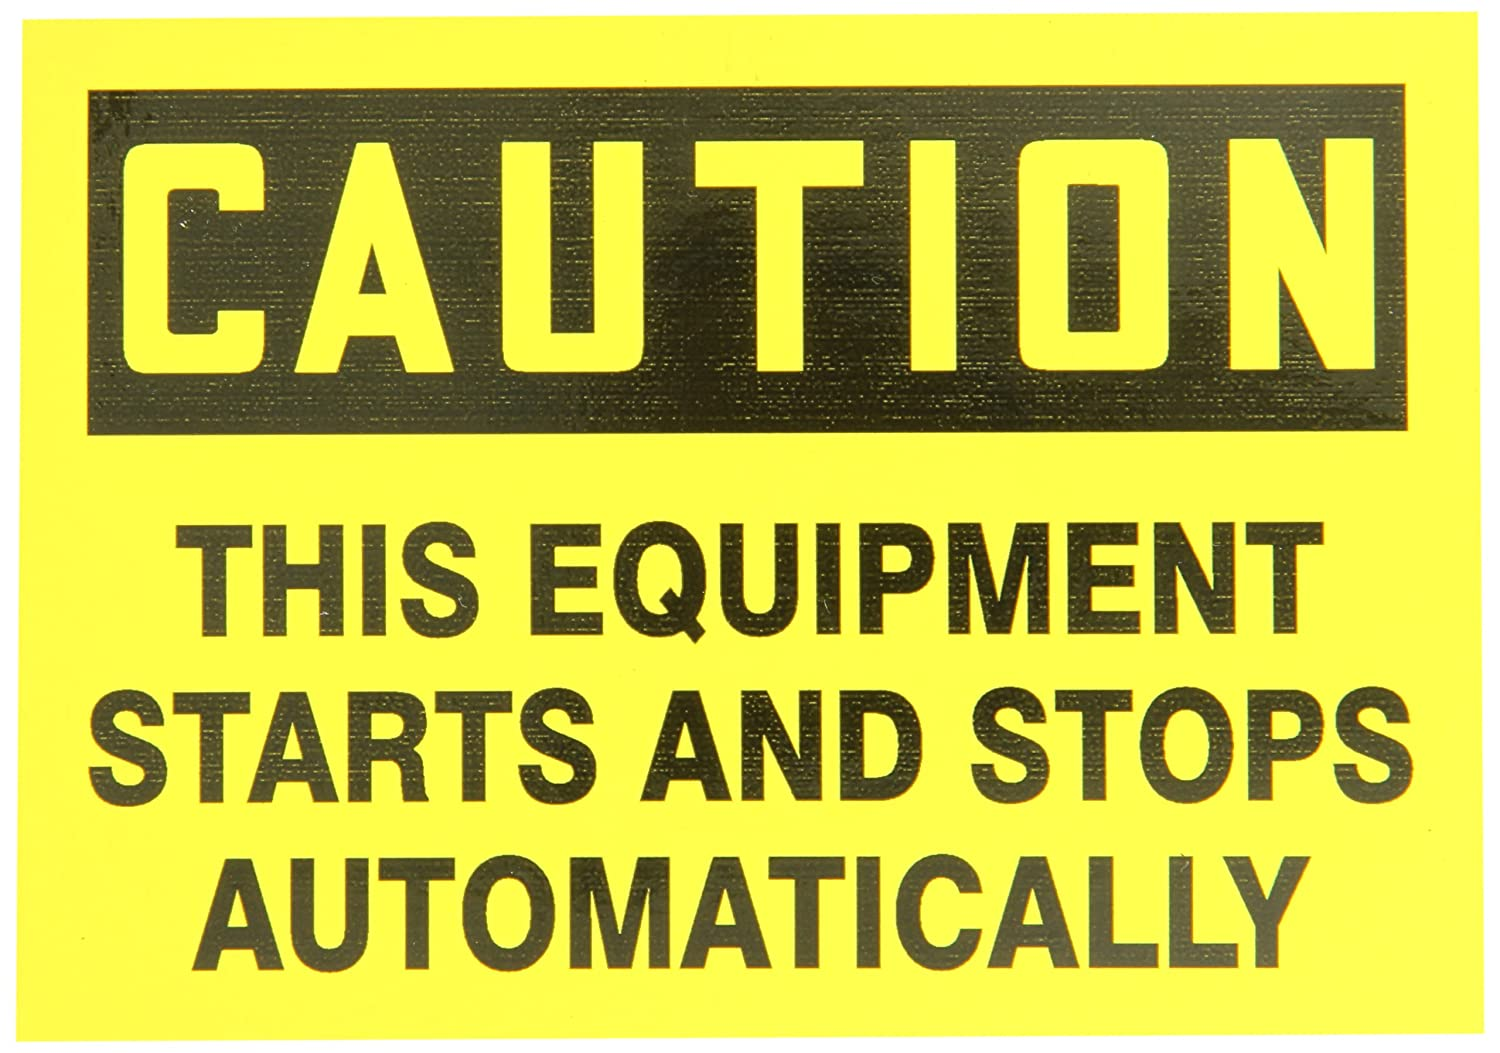 Accuform Signs LEQM782VSP Safety Label, Legend'Caution This Equipment Starts and Stops Automatically', 3.5' Length x 5' Width x 0.004' Thickness, Adhesive Vinyl, Black on Yellow (Pack of 5) LegendCaution This Equipment Starts and Stops Automatically